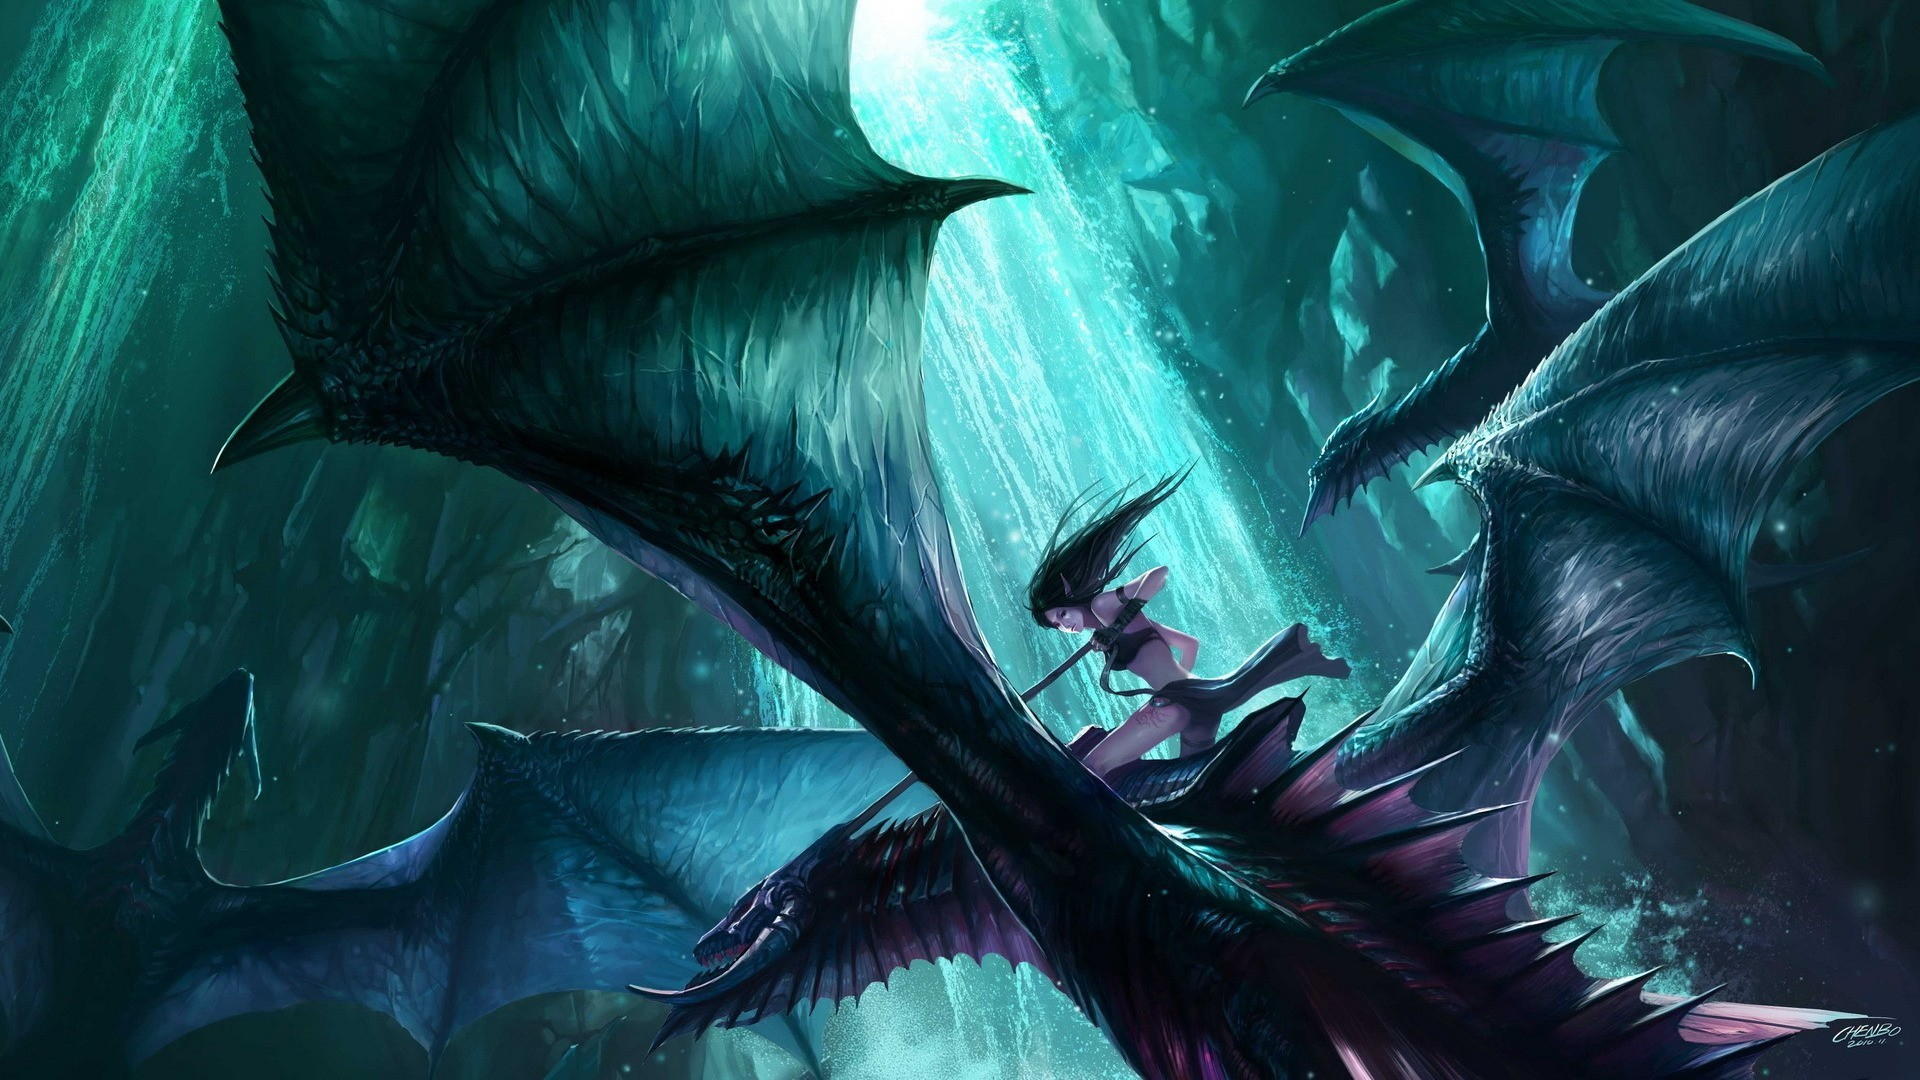 Dragons fantasy art elves HD Wallpaper